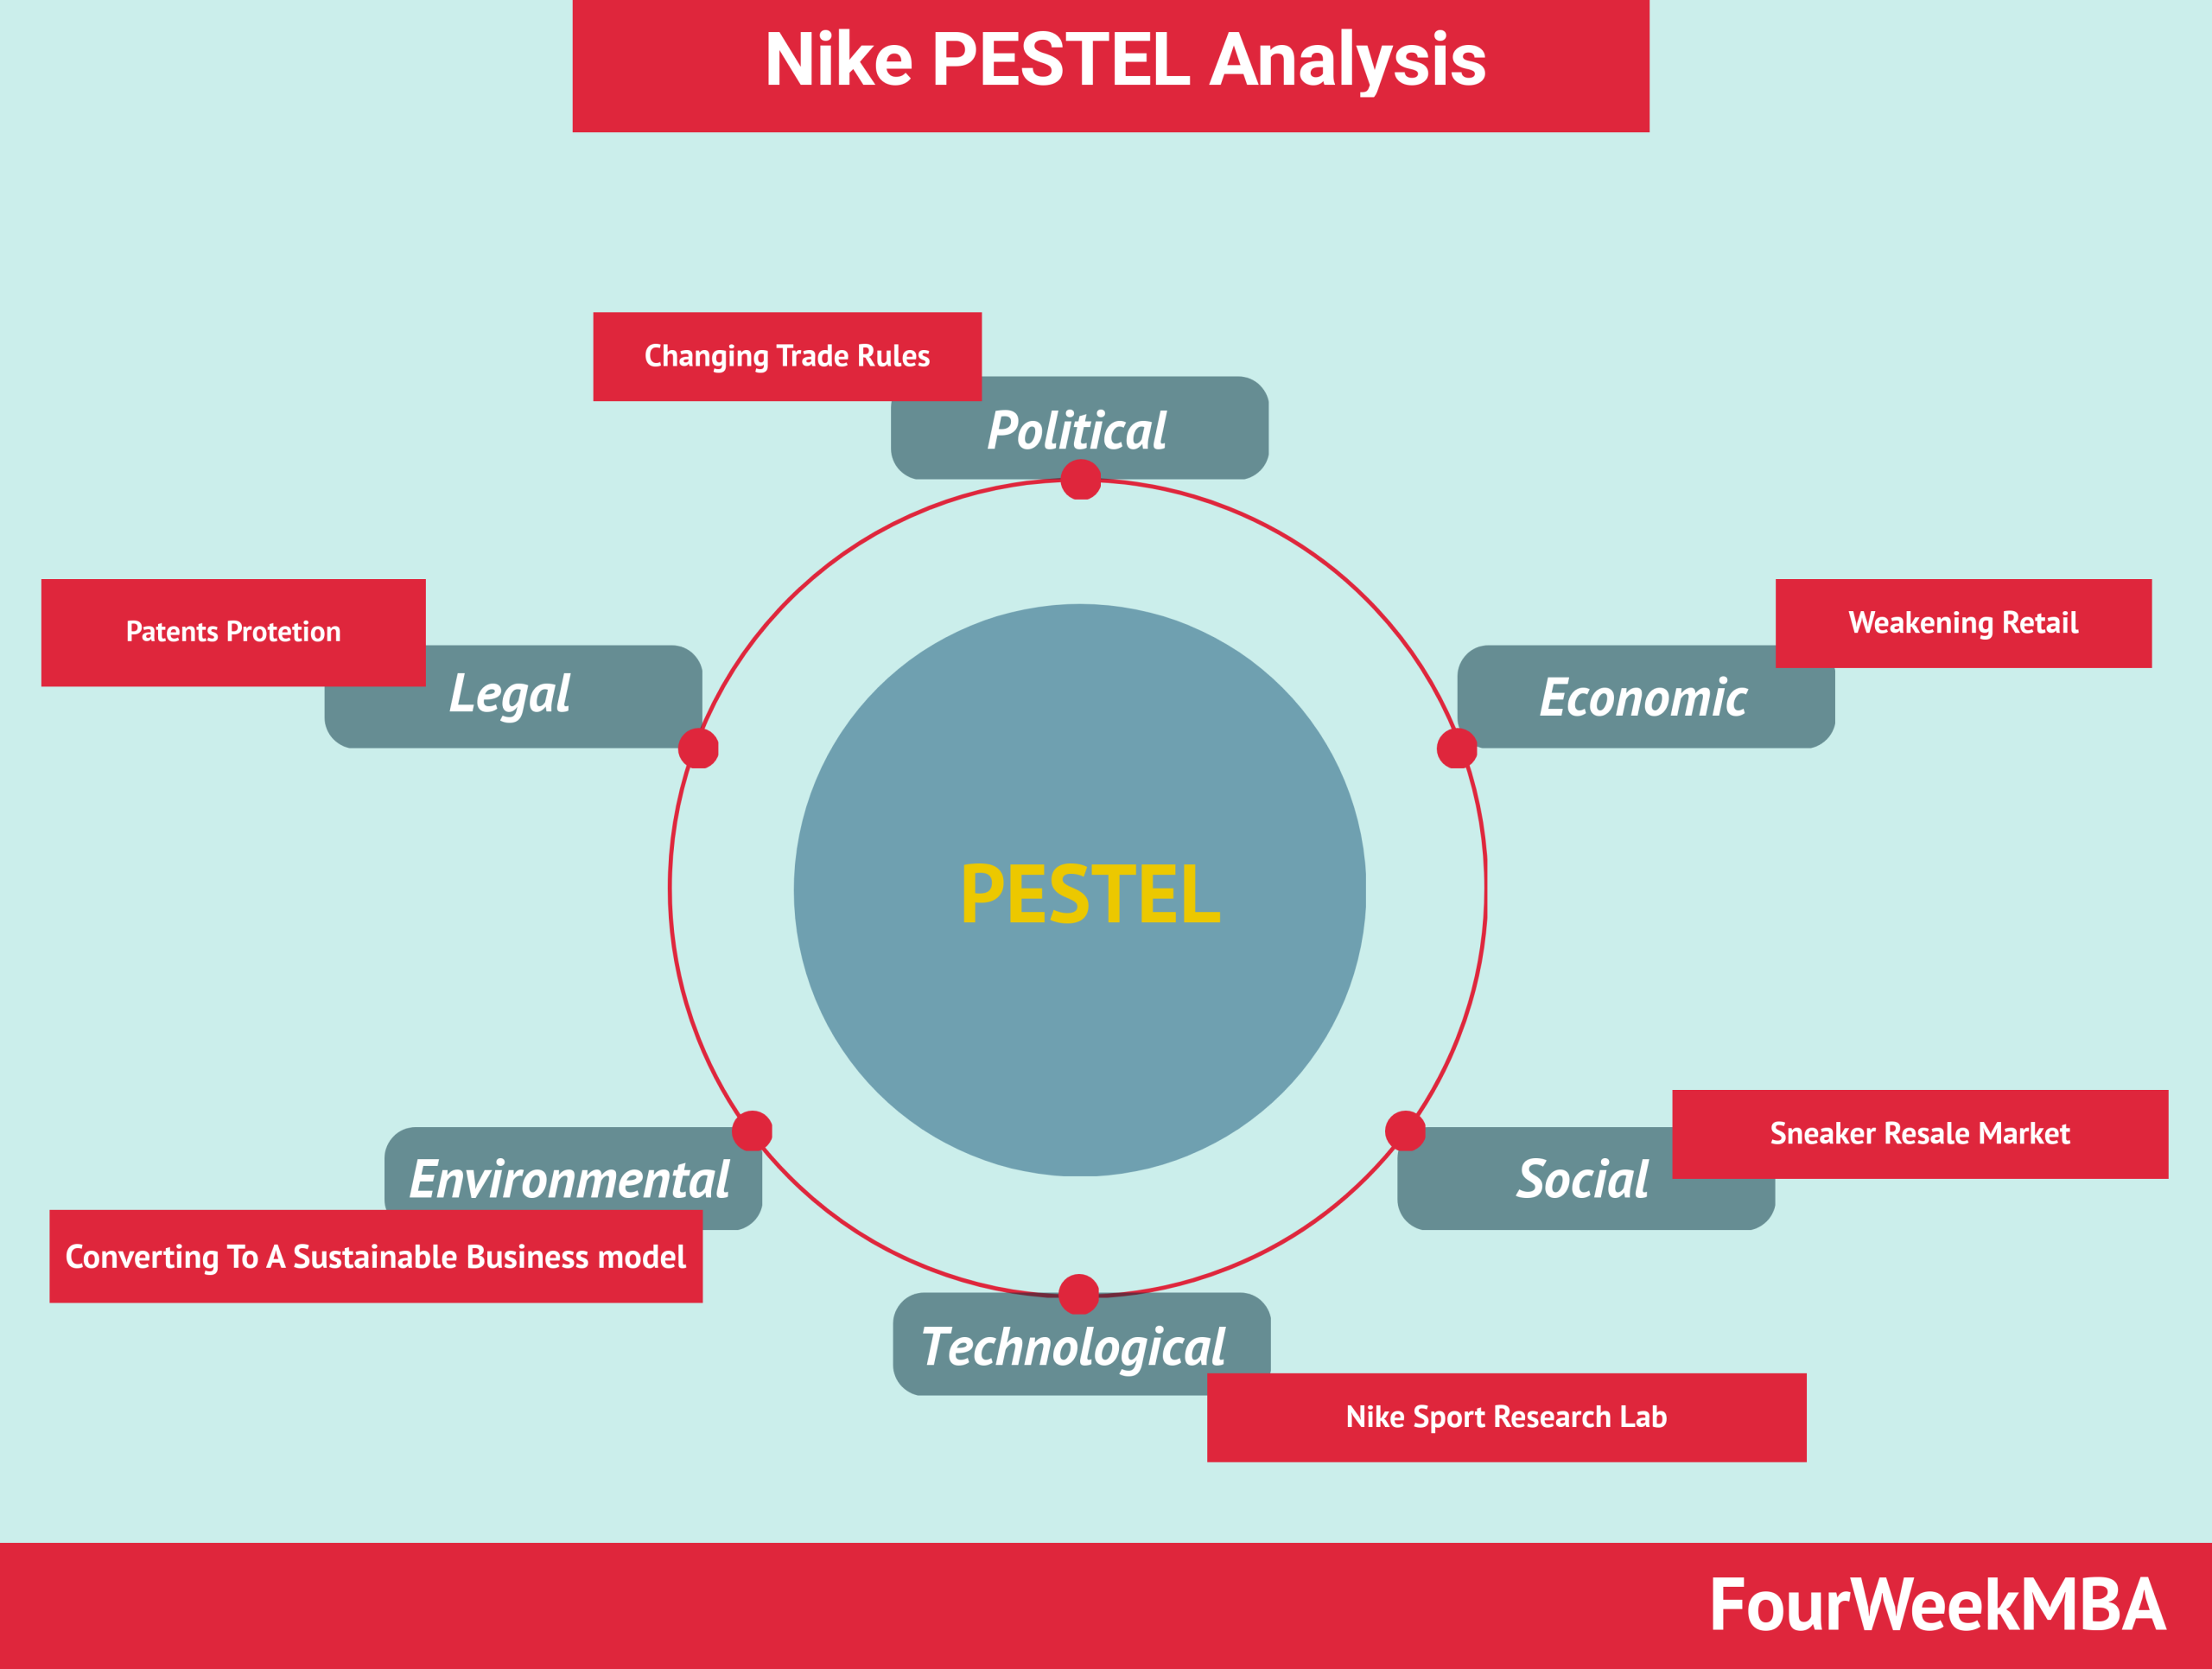 Nike PESTEL analysis